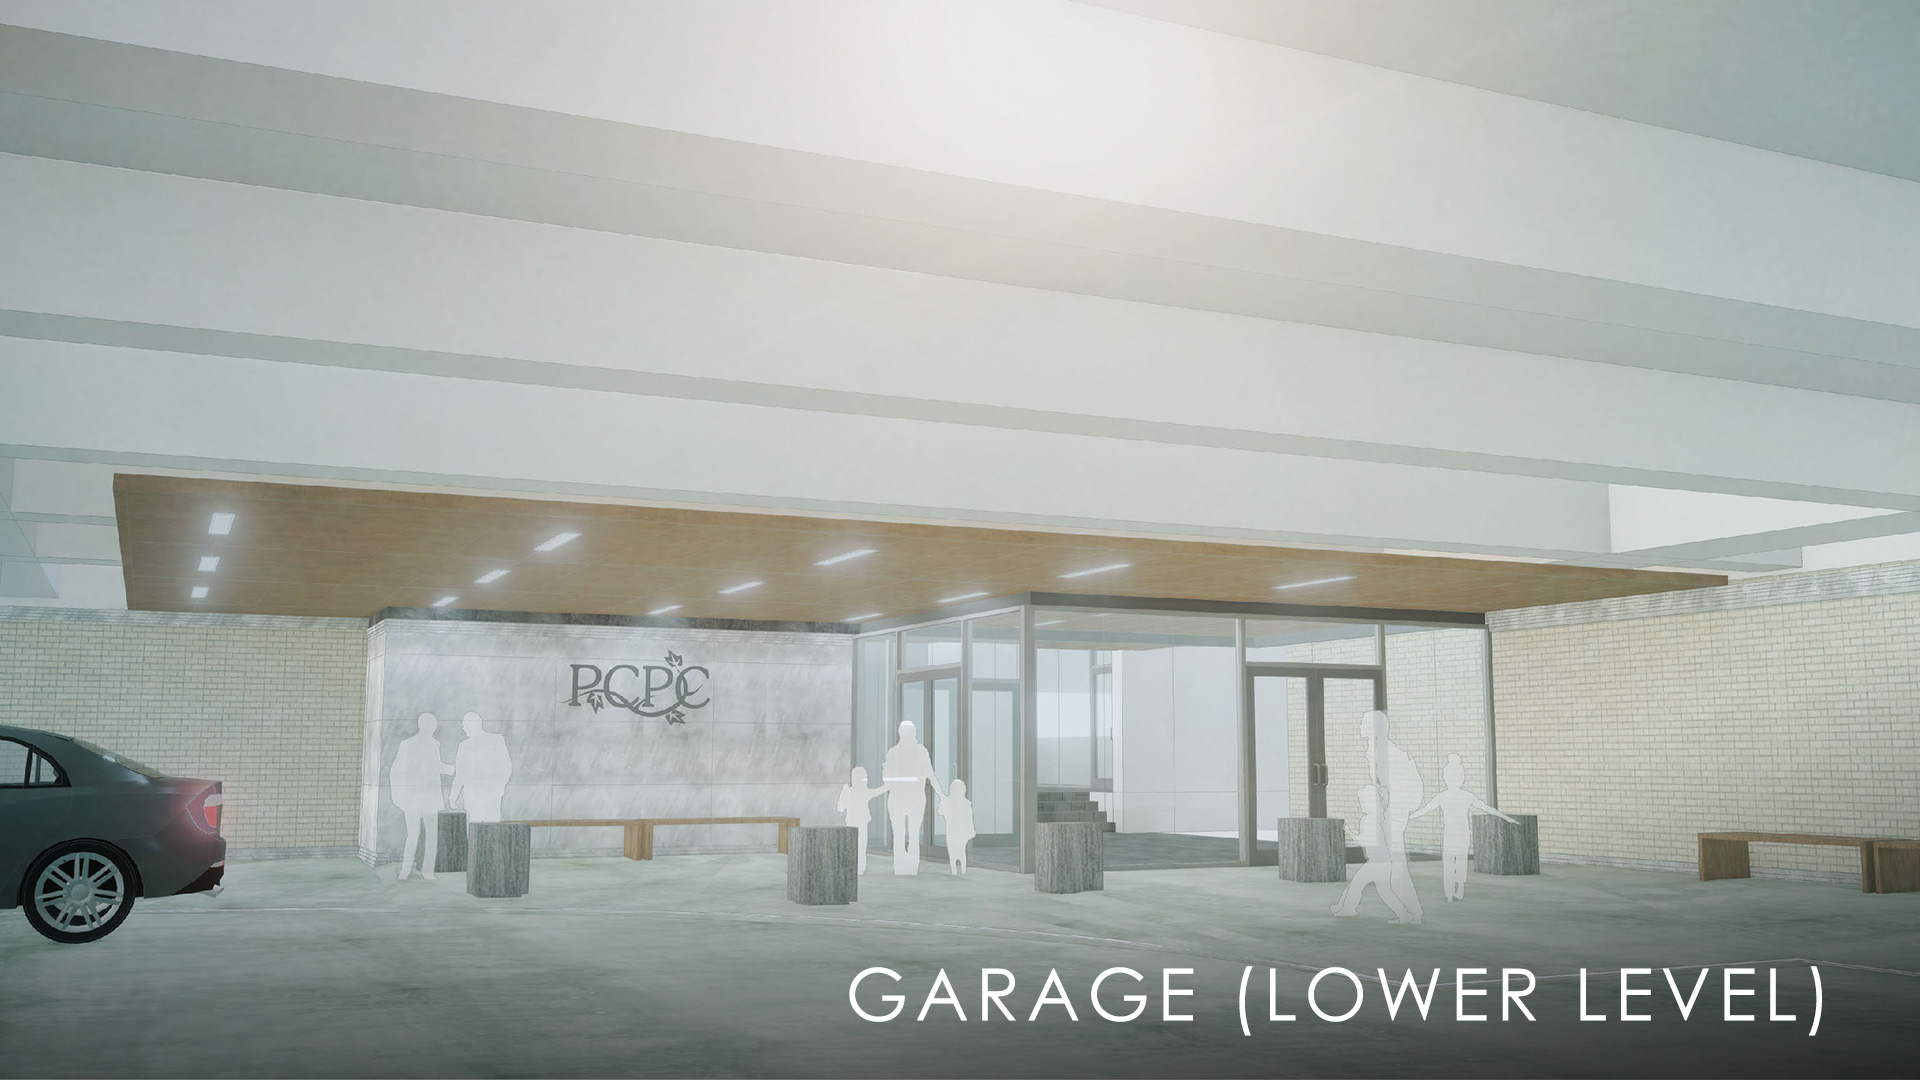 GarageLowerLevel-1920x1080.jpg